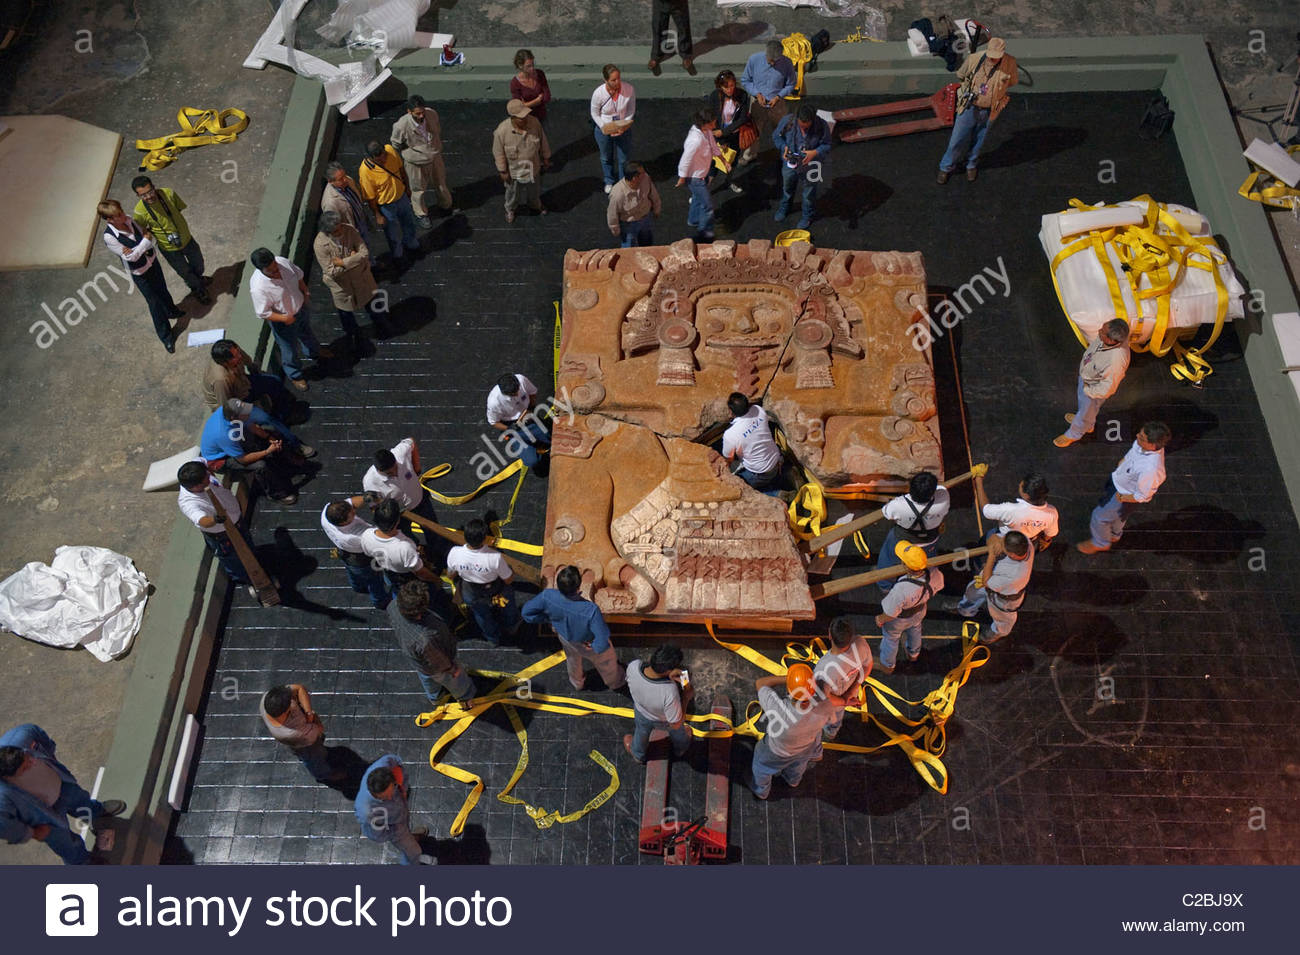 The Tlaltecuhtli Stone is moved from the excavation site to museum. - Stock Image